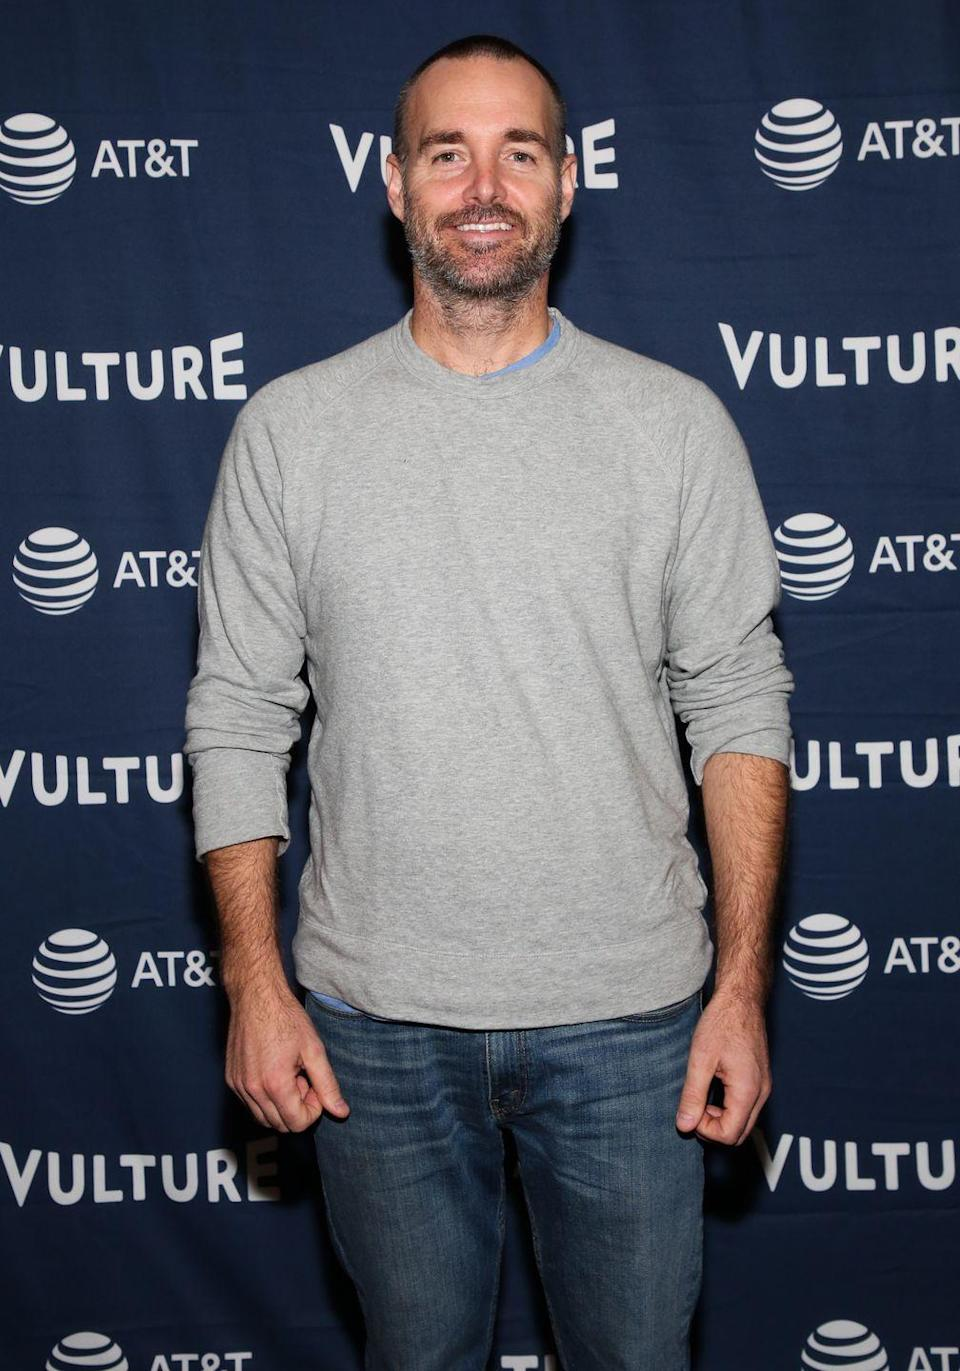 <p>The <em>Saturday Night Live</em> alum has racked up a huge amount of credits doing voice work on both the big and small screen. With roles in films like <em>The Lego Movie</em> (where he played Abraham Lincoln) to the recent <em>Scoob! (</em>here he voiced Shaggy) and TV shows like <em>American Dad!</em>, <em>The Cleveland Show</em> and <em>Bob's Burgers</em>.</p>